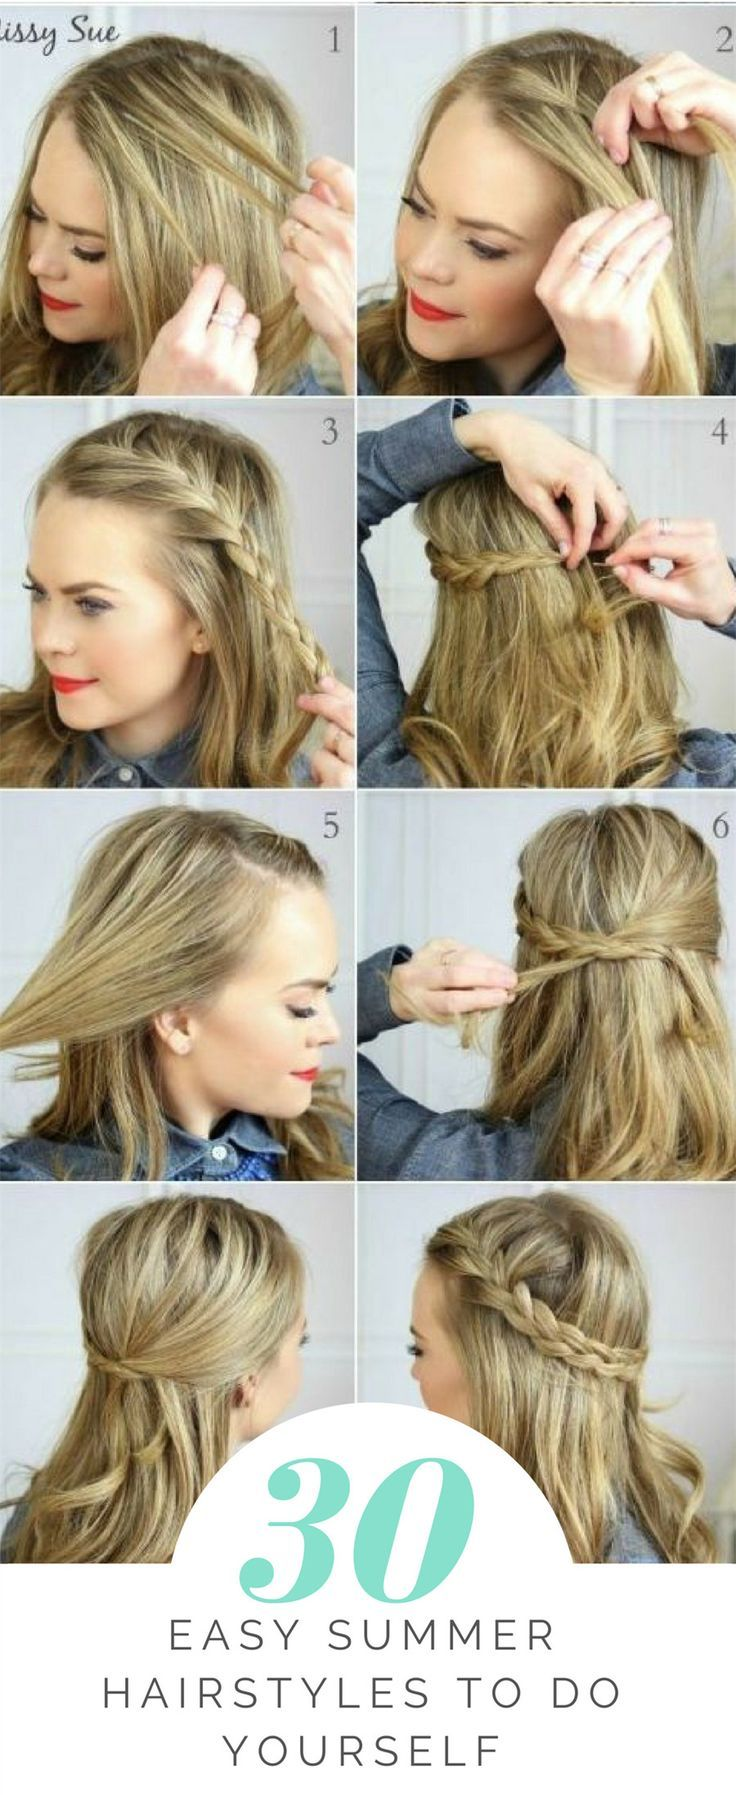 30 Simple Summer Hairstyles For Diy Hair Styles Easy Hairstyles For Medium Hair Medium Hair Styles